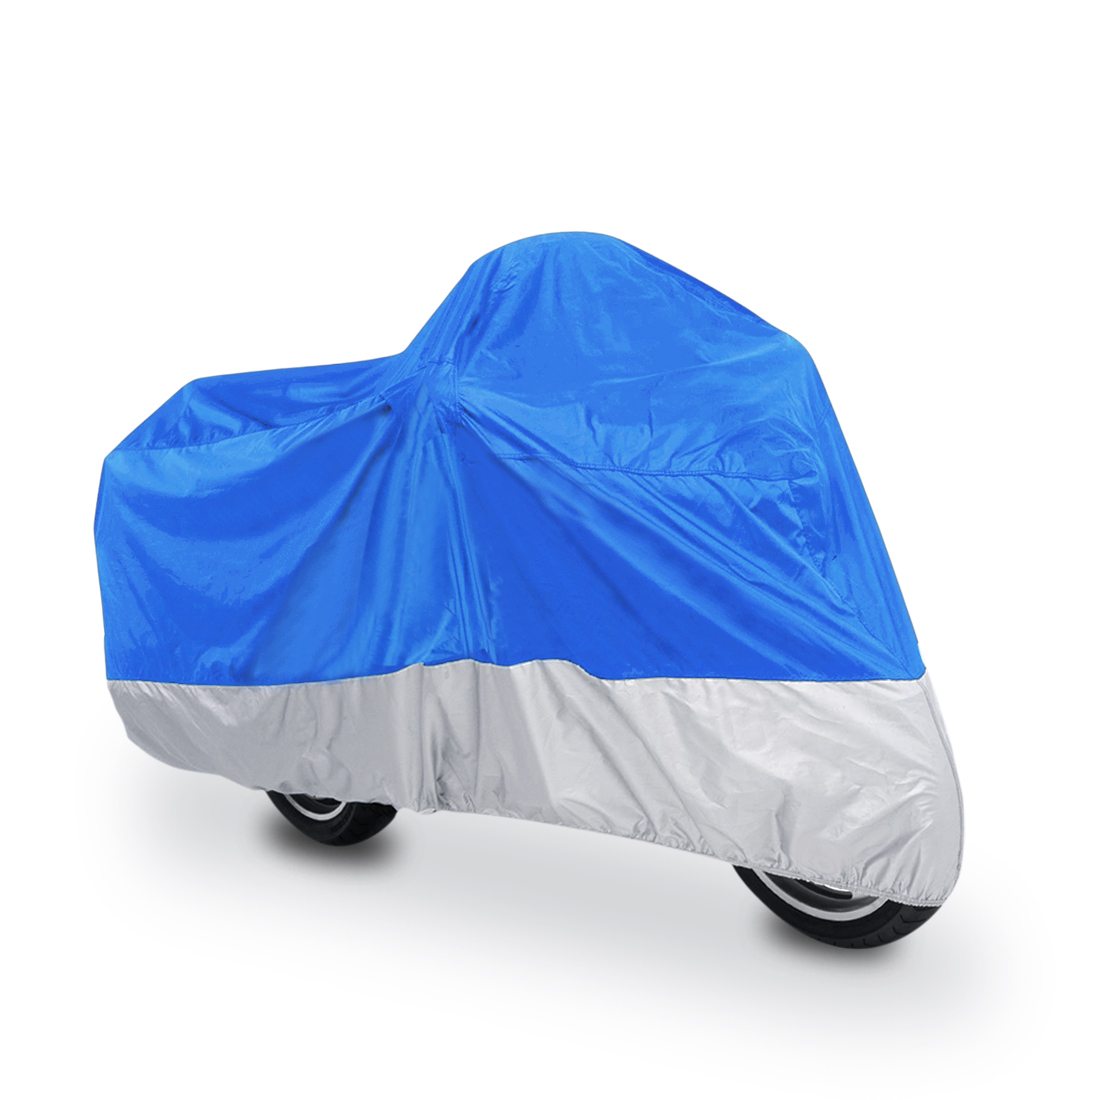 L 180T Rain Dust Motorcycle Cover Blue+Silver Outdoor Waterproof UV Protector